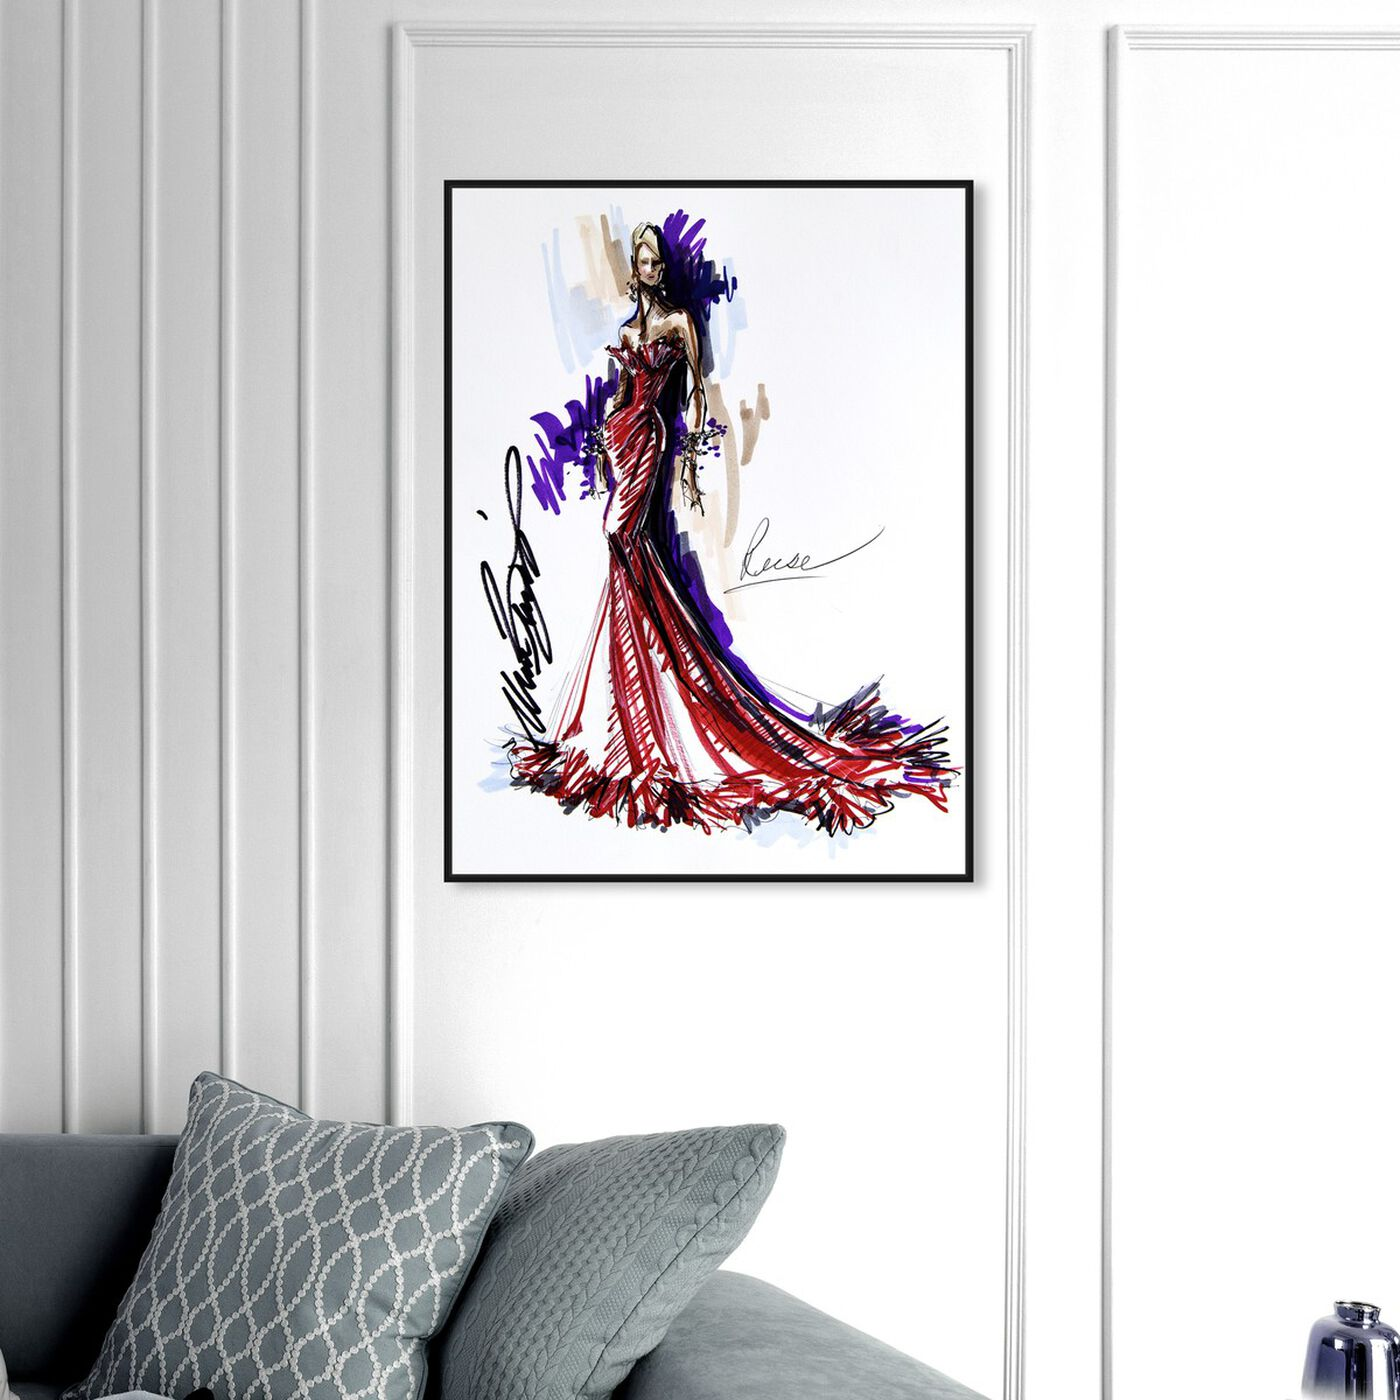 Hanging view of Mark Zunino - Reese featuring fashion and glam and sketches art.